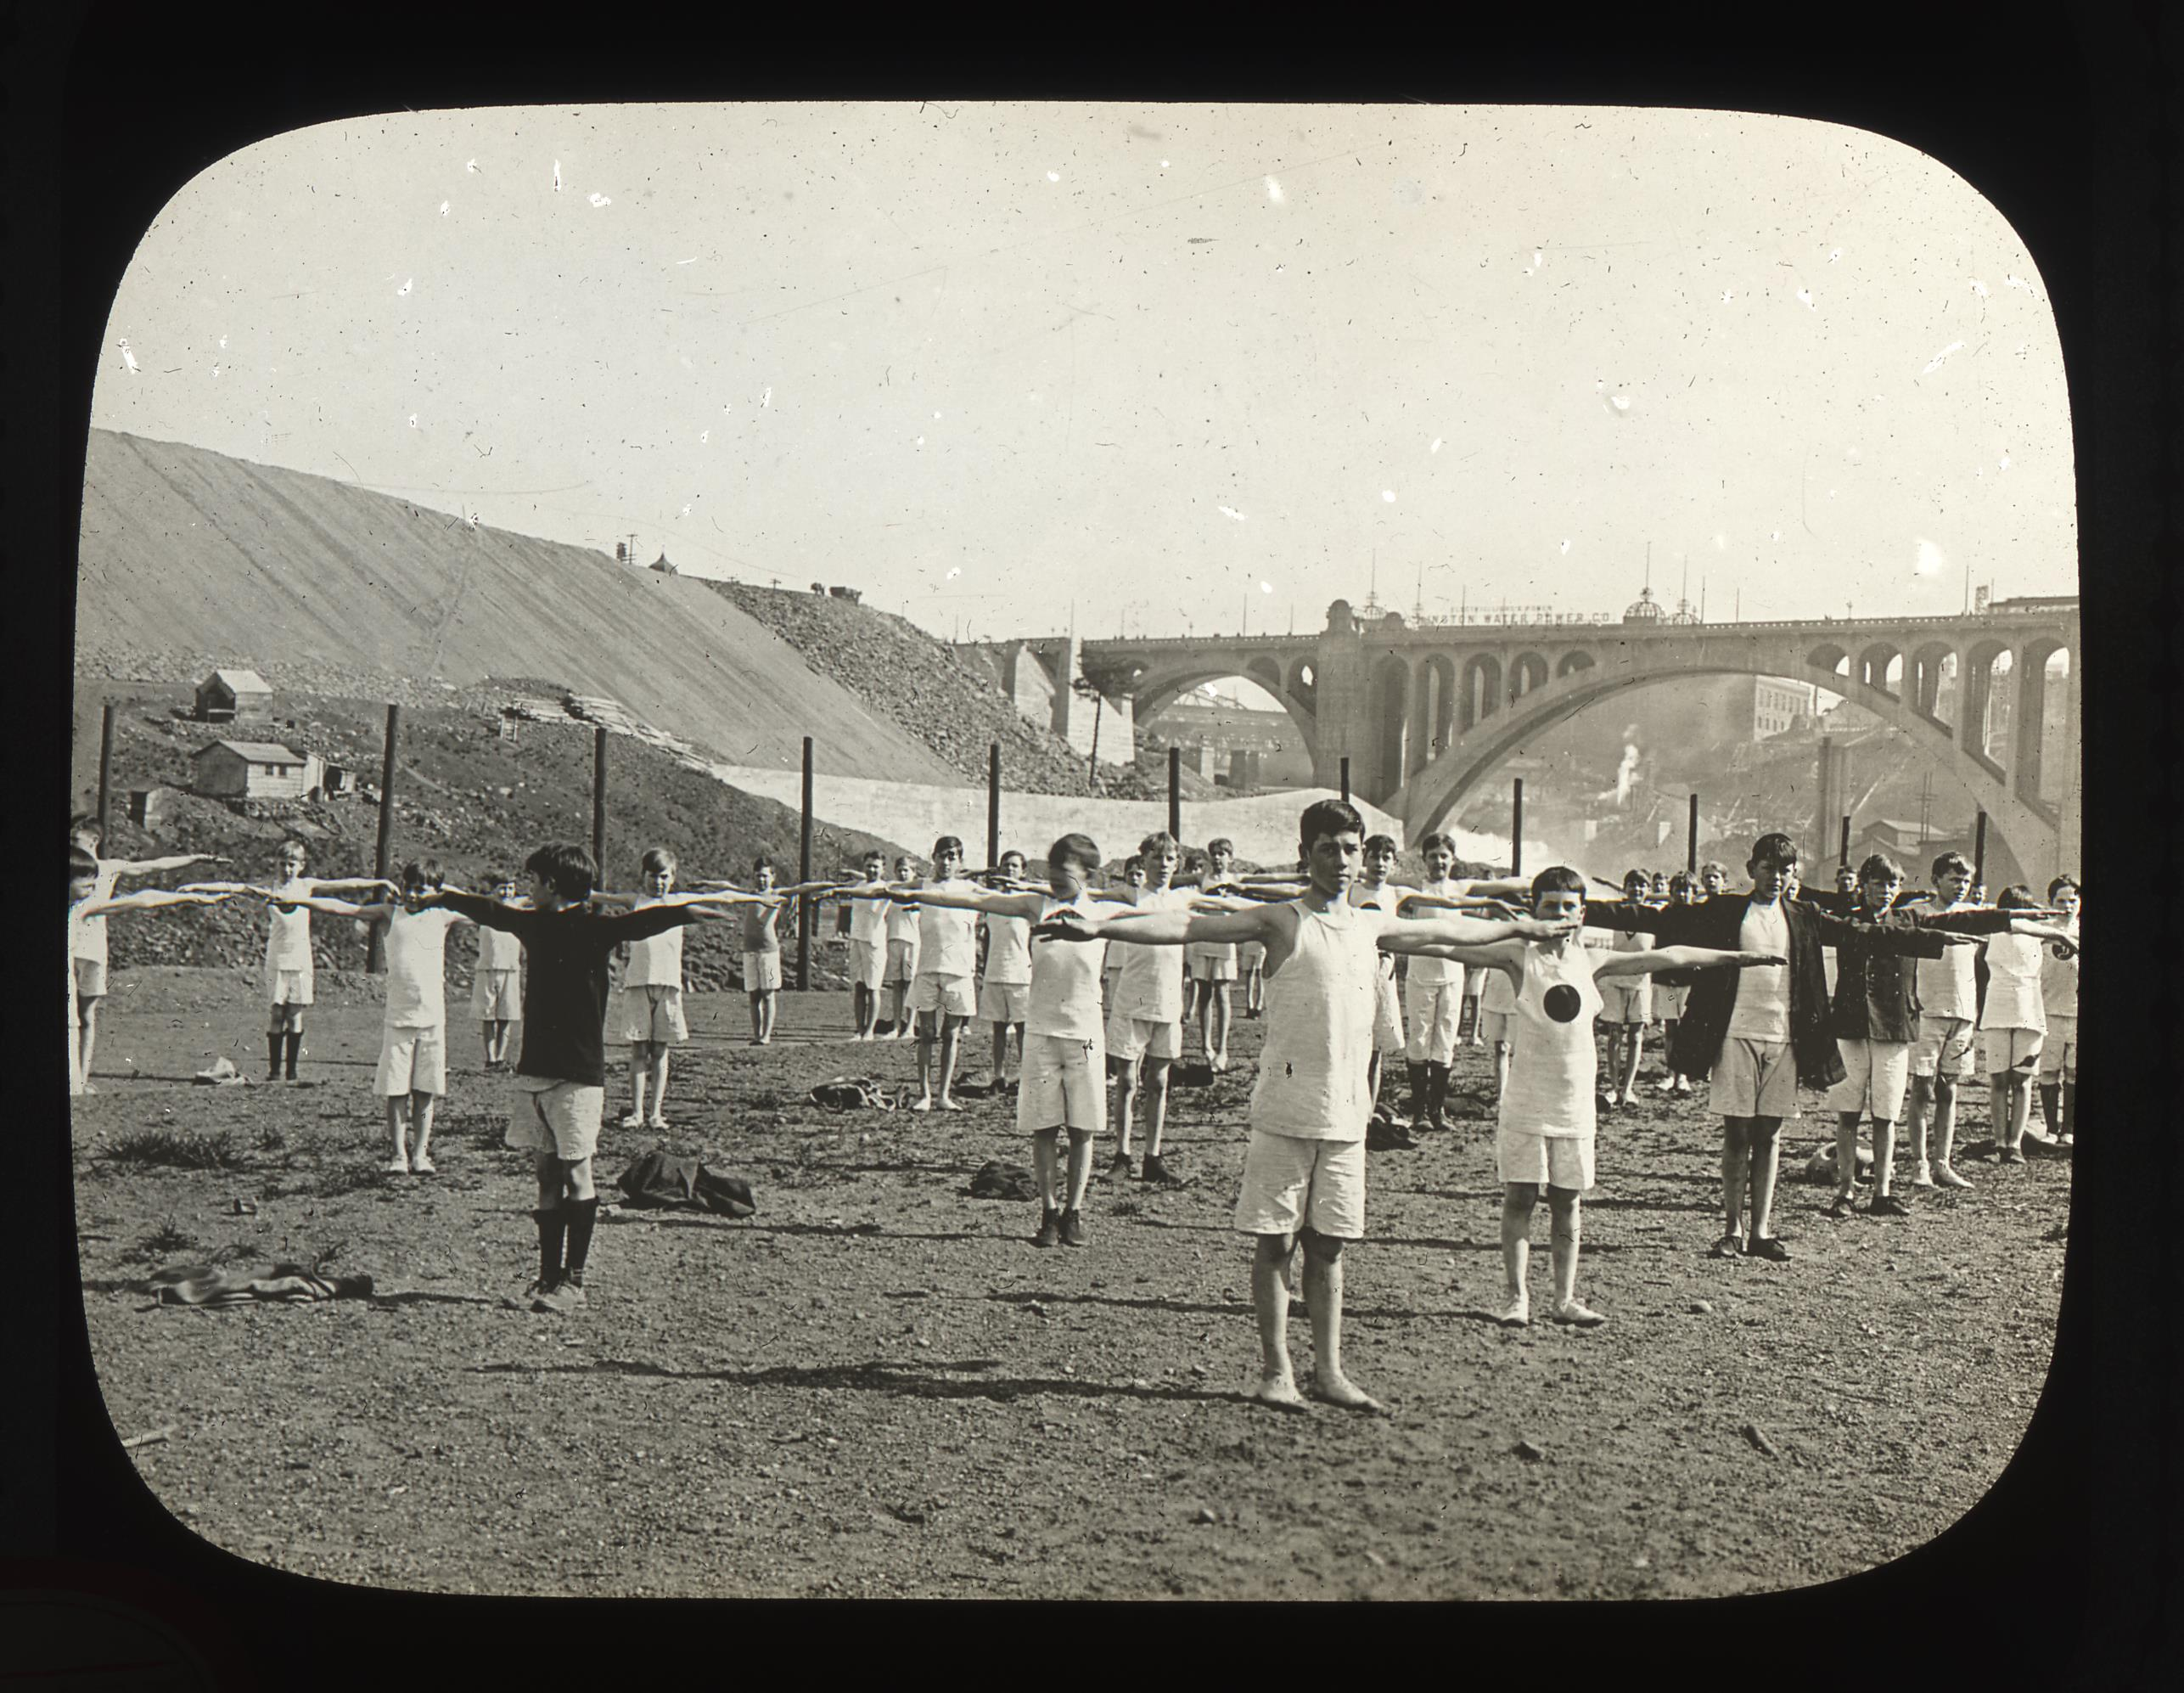 Title: Glover Field, Date: 1910-1920, Photographer: Unknown, City of Spokane, Lantern Slides, 1900-1930, Washington State Archives, Digital Archives, http://www.digitalarchives.wa.gov, Date accessed: 04/04/2014.